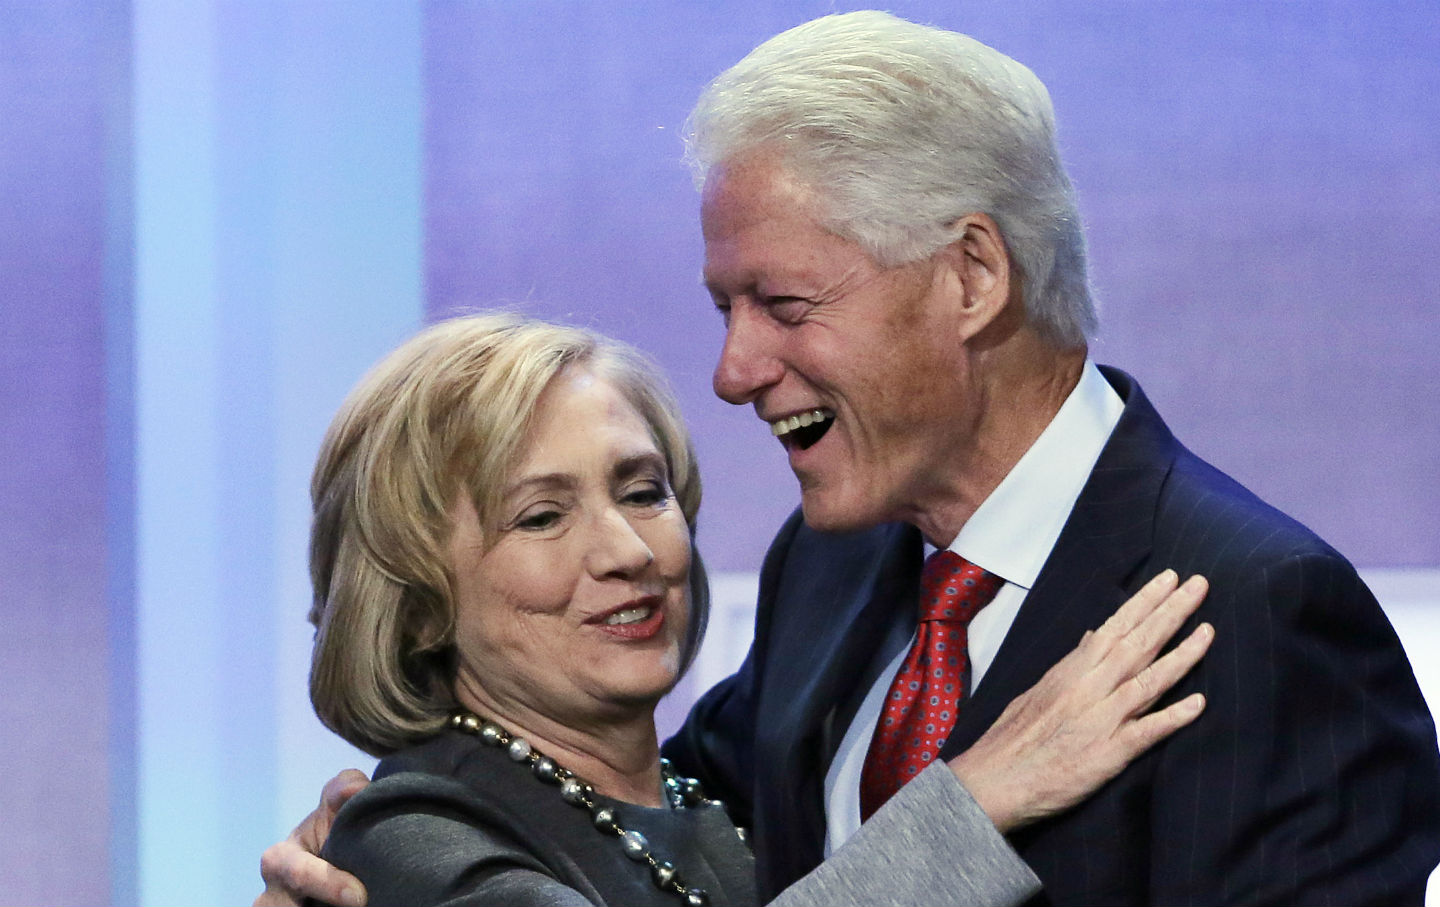 if you re wondering if hillary is turning populist just ask her hillary clinton is welcomed to the stage by her husband bill clinton at the clinton global initiative in 2014 ap photo mark lennihan